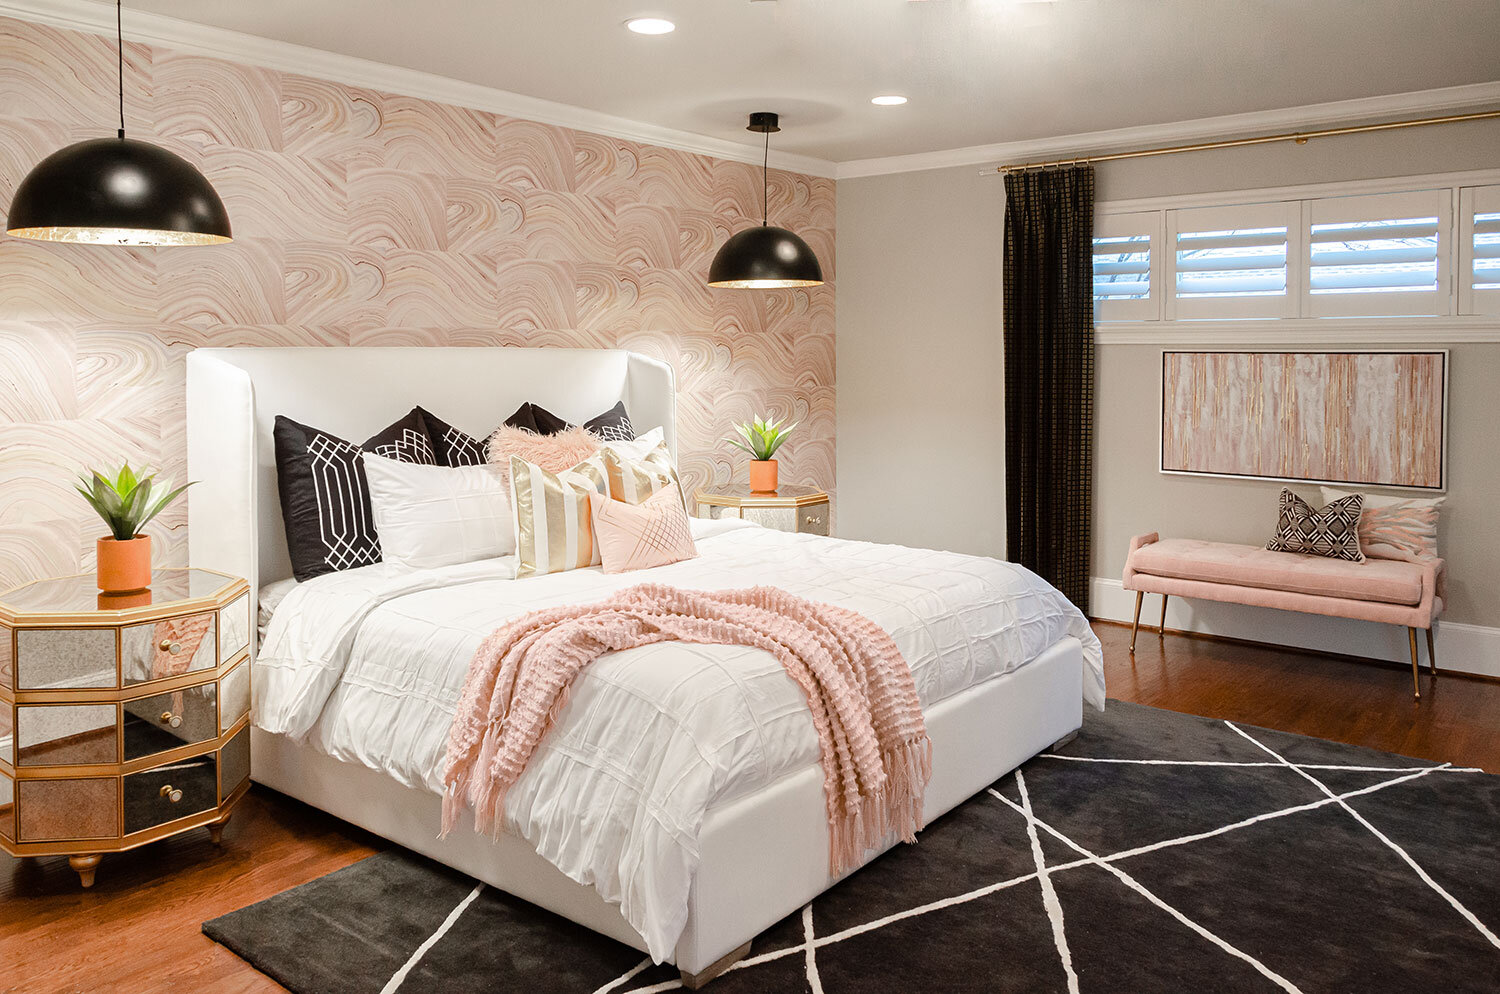 pink and black bedroom decor with